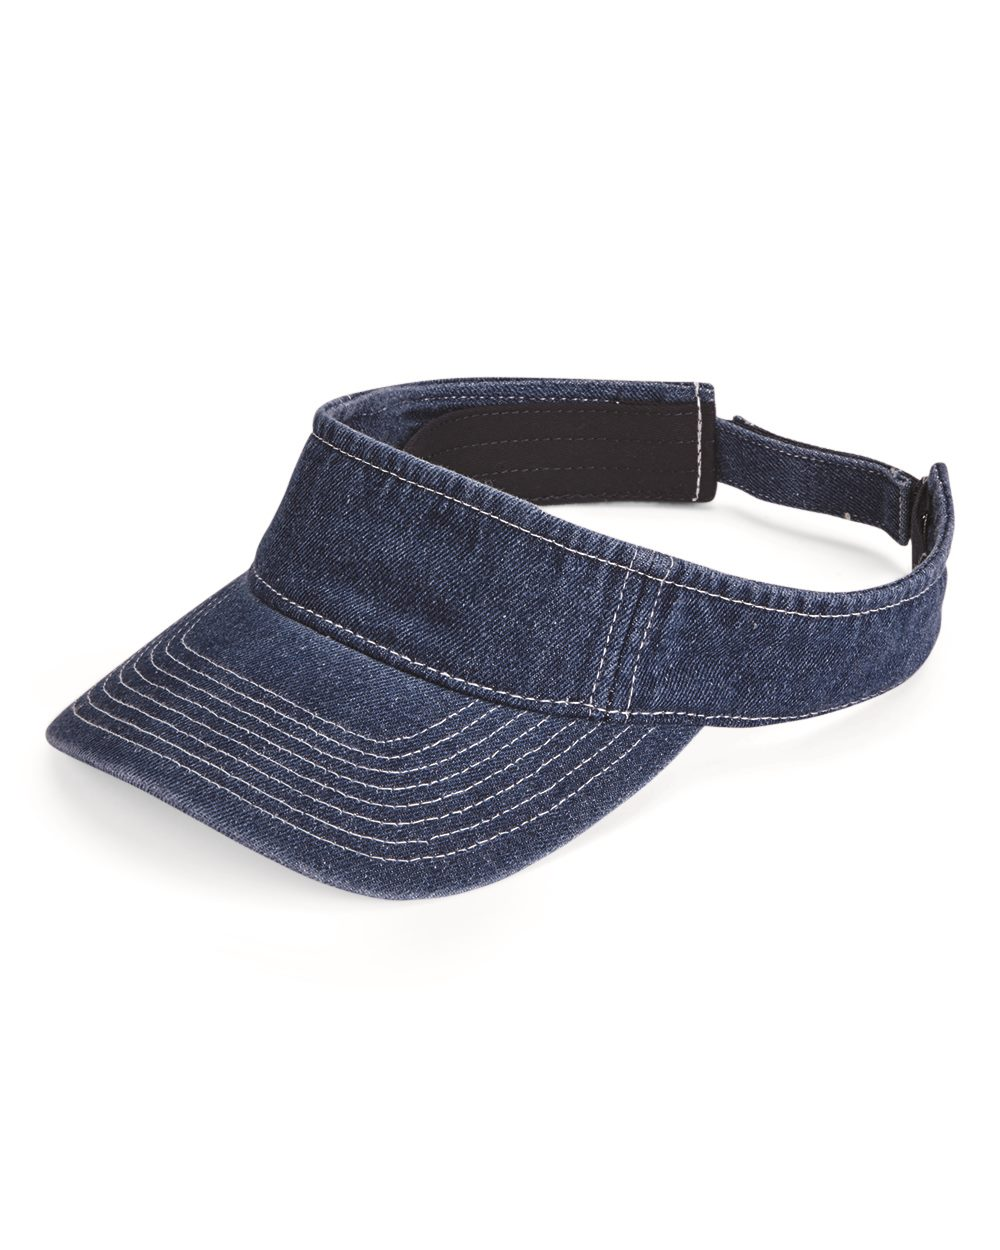 Mega Cap 4029 - Washed Denim Visor